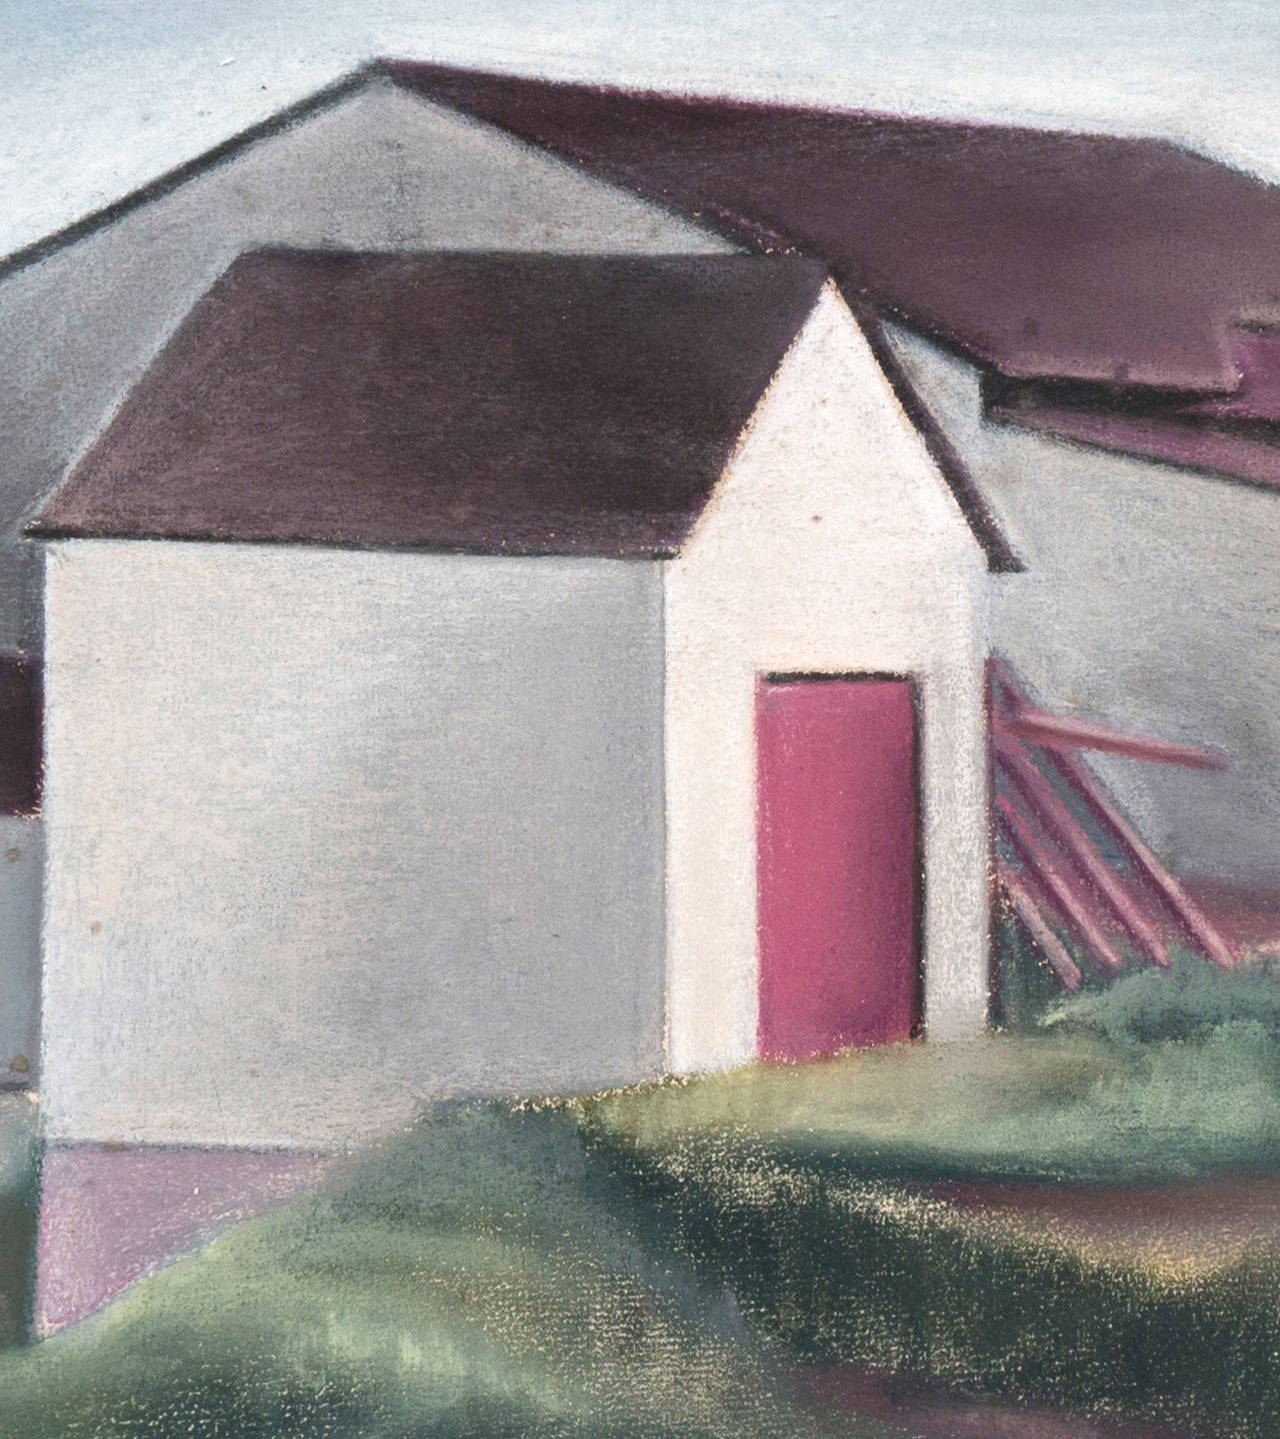 White Barn - Painting by Thomas Flavell